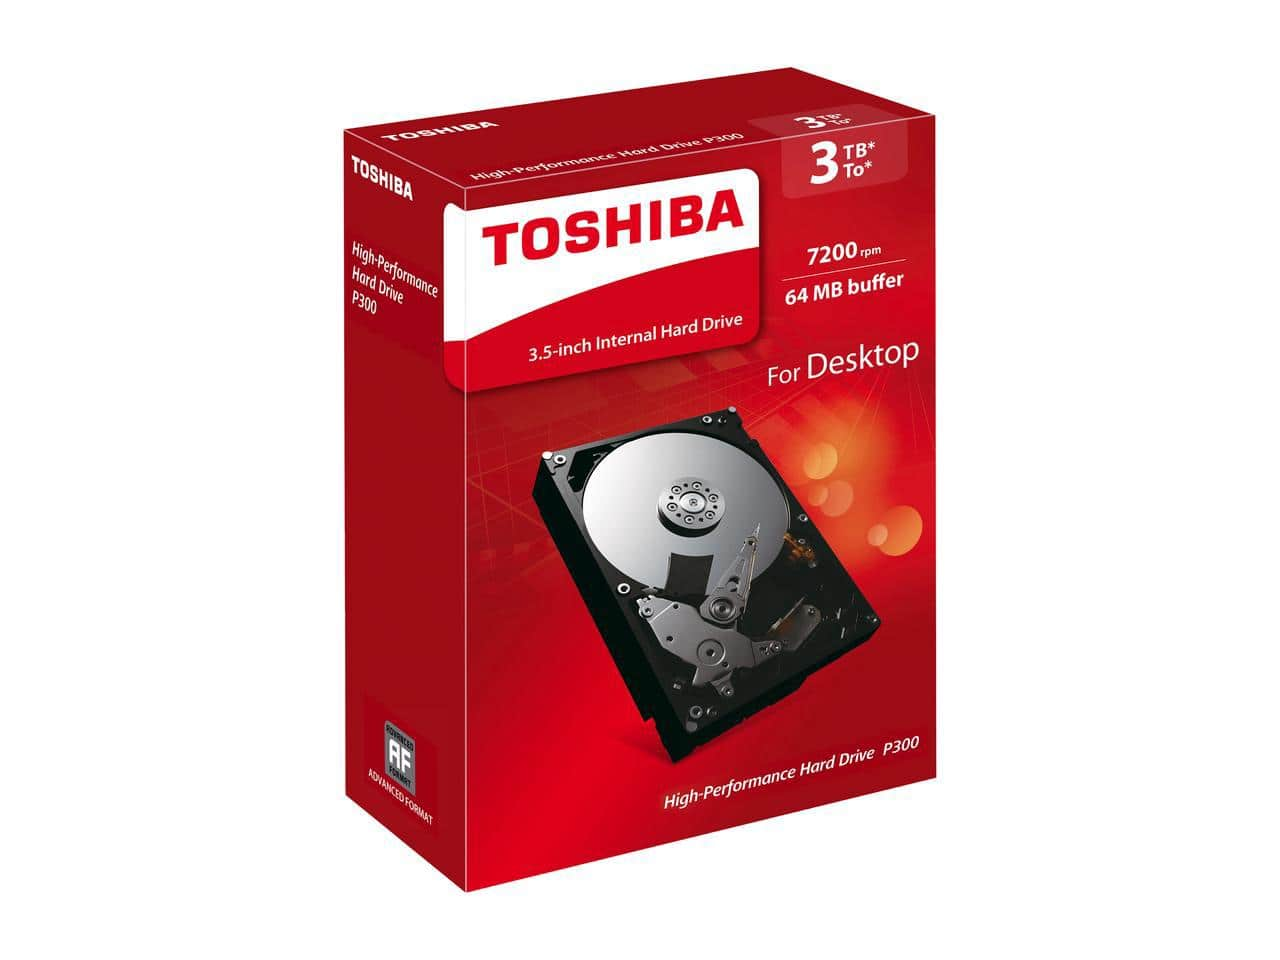 Toshiba P300 3TB PC Desktop Hard Drive 7200 RPM 64MB Cache SATA 6.0Gb/s 3.5 Inch Internal Hard Drive Retail Packaging $78.99